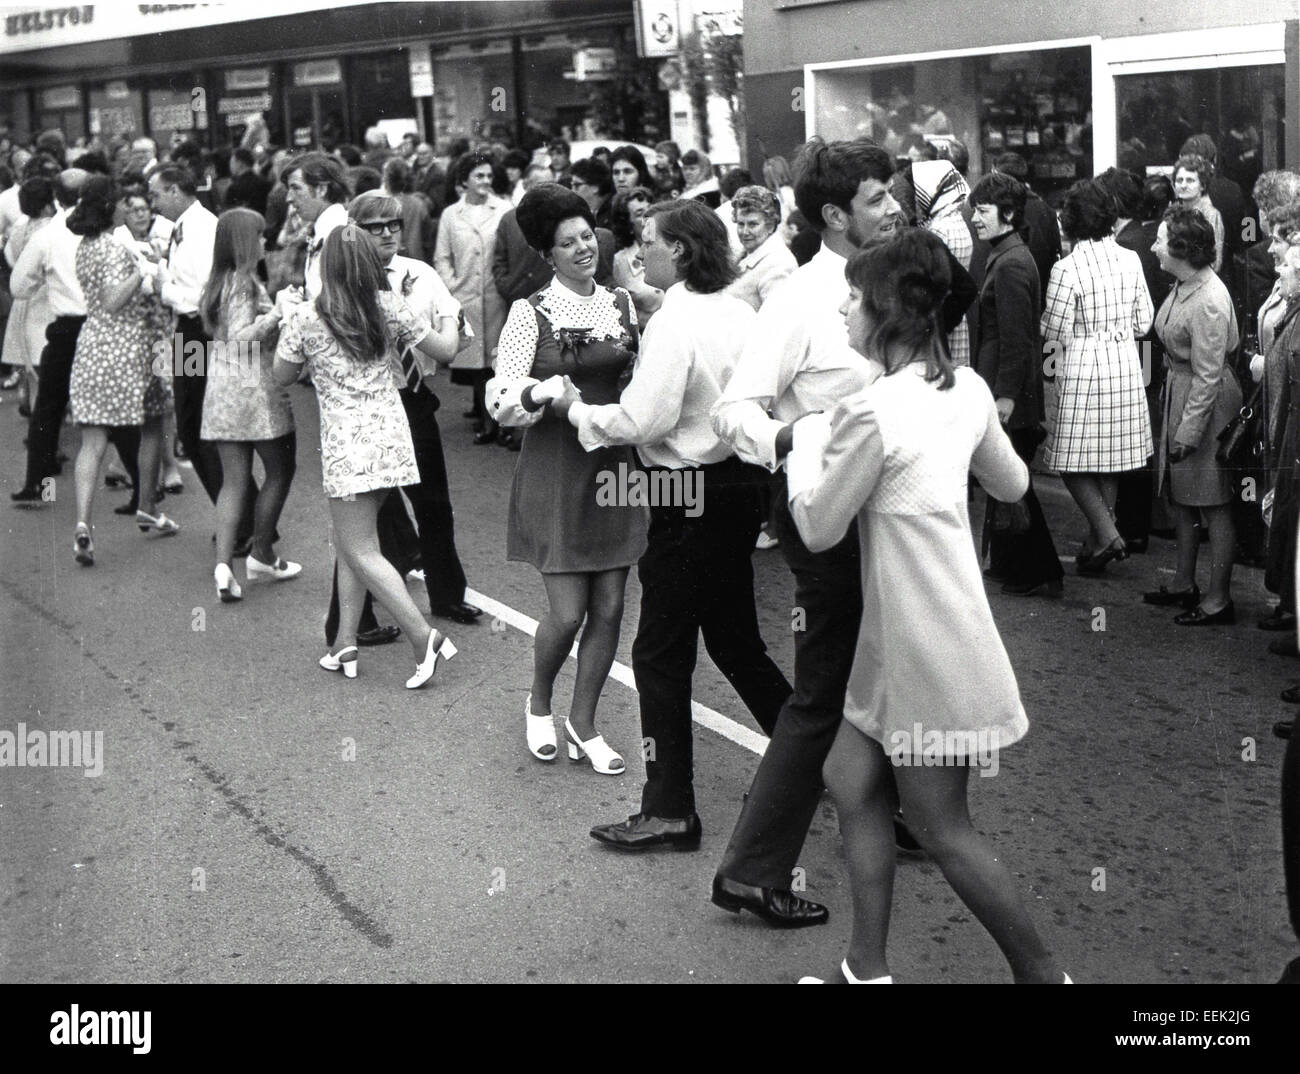 1960s historical, shoppers watching men and women dancing together in the street, with girls wearing flower patterned - Stock Image